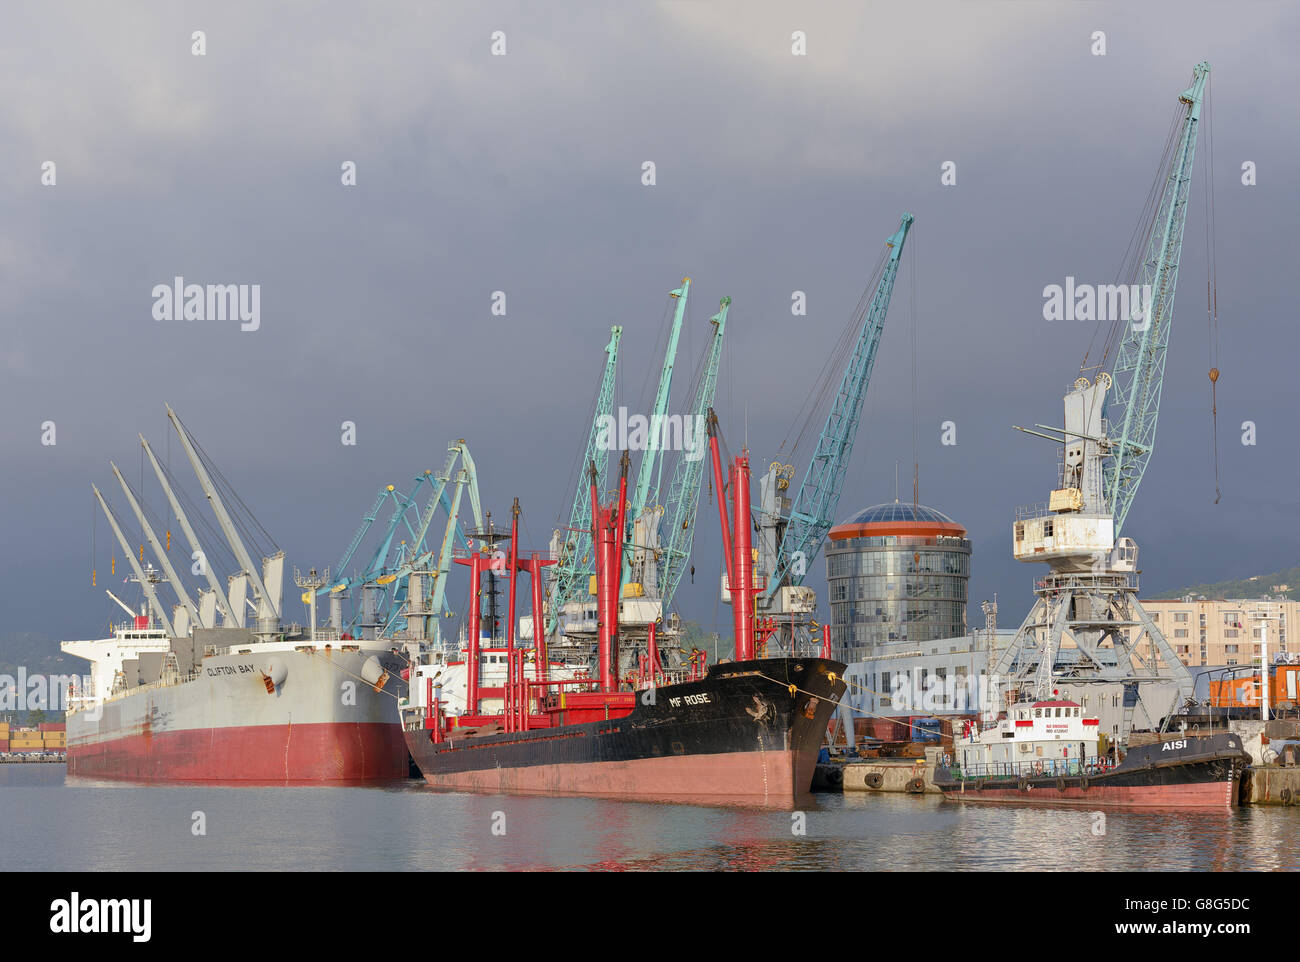 Batumi industrial sea port with ships and cranes, Black Sea harbour - Stock Image